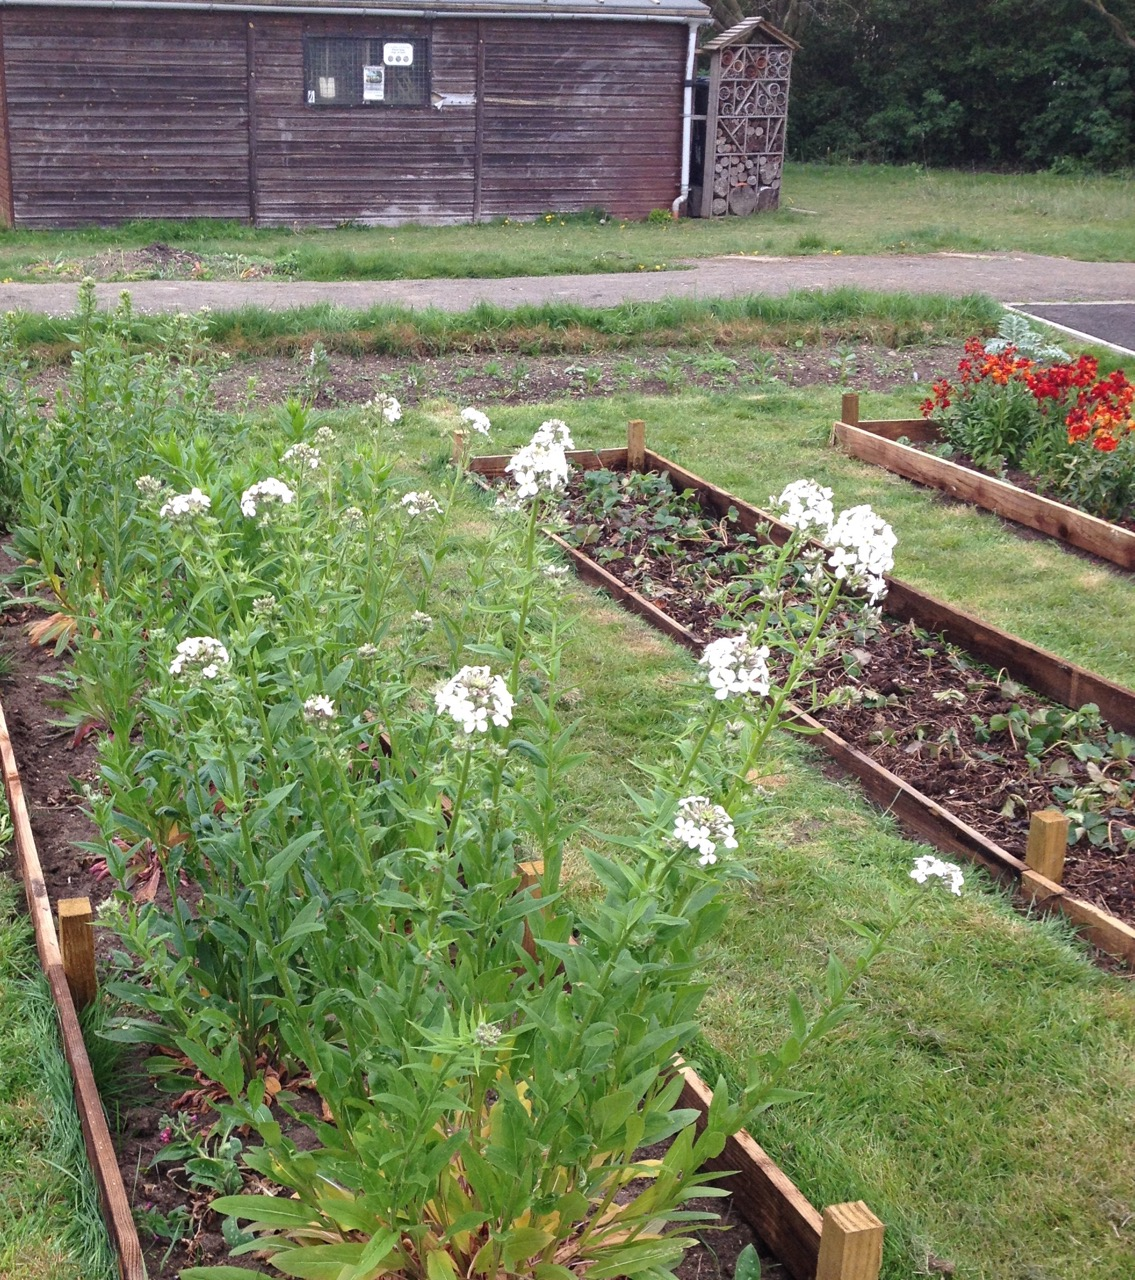 The hesperis (sweet rocket) is coming into flower - and we have a new bed of Snow White, white strawberries (pineberries). And biennial wallflowers.